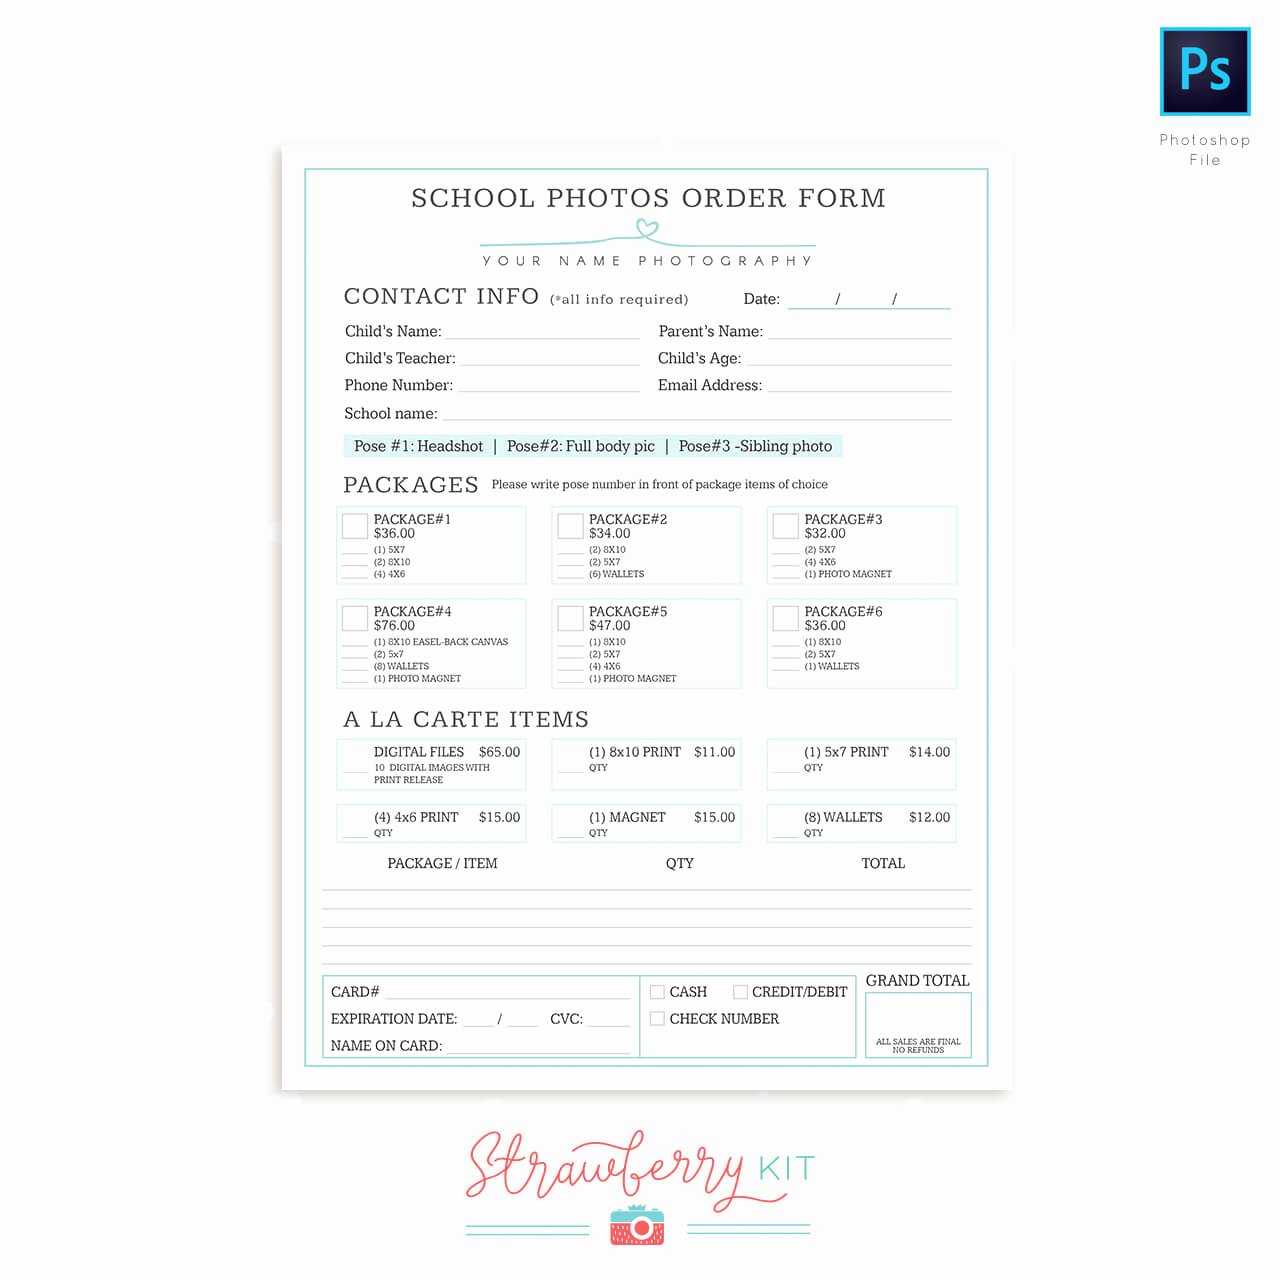 Photography order form Template Free New School Photography order form Template Strawberry Kit